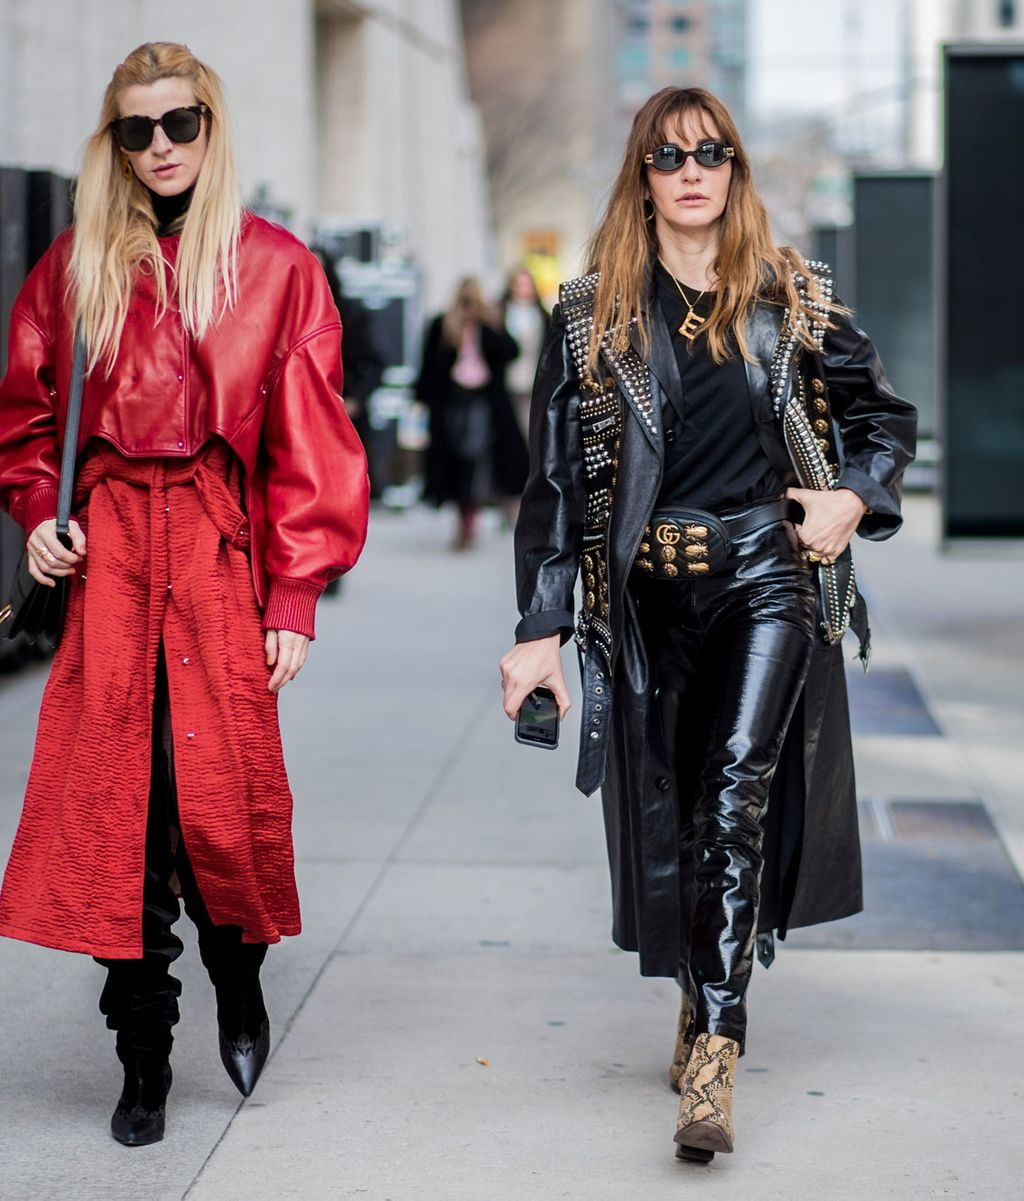 04d3d084f71e Street Style Is Killing Itself With Its Narrow Focus on Thin White Women